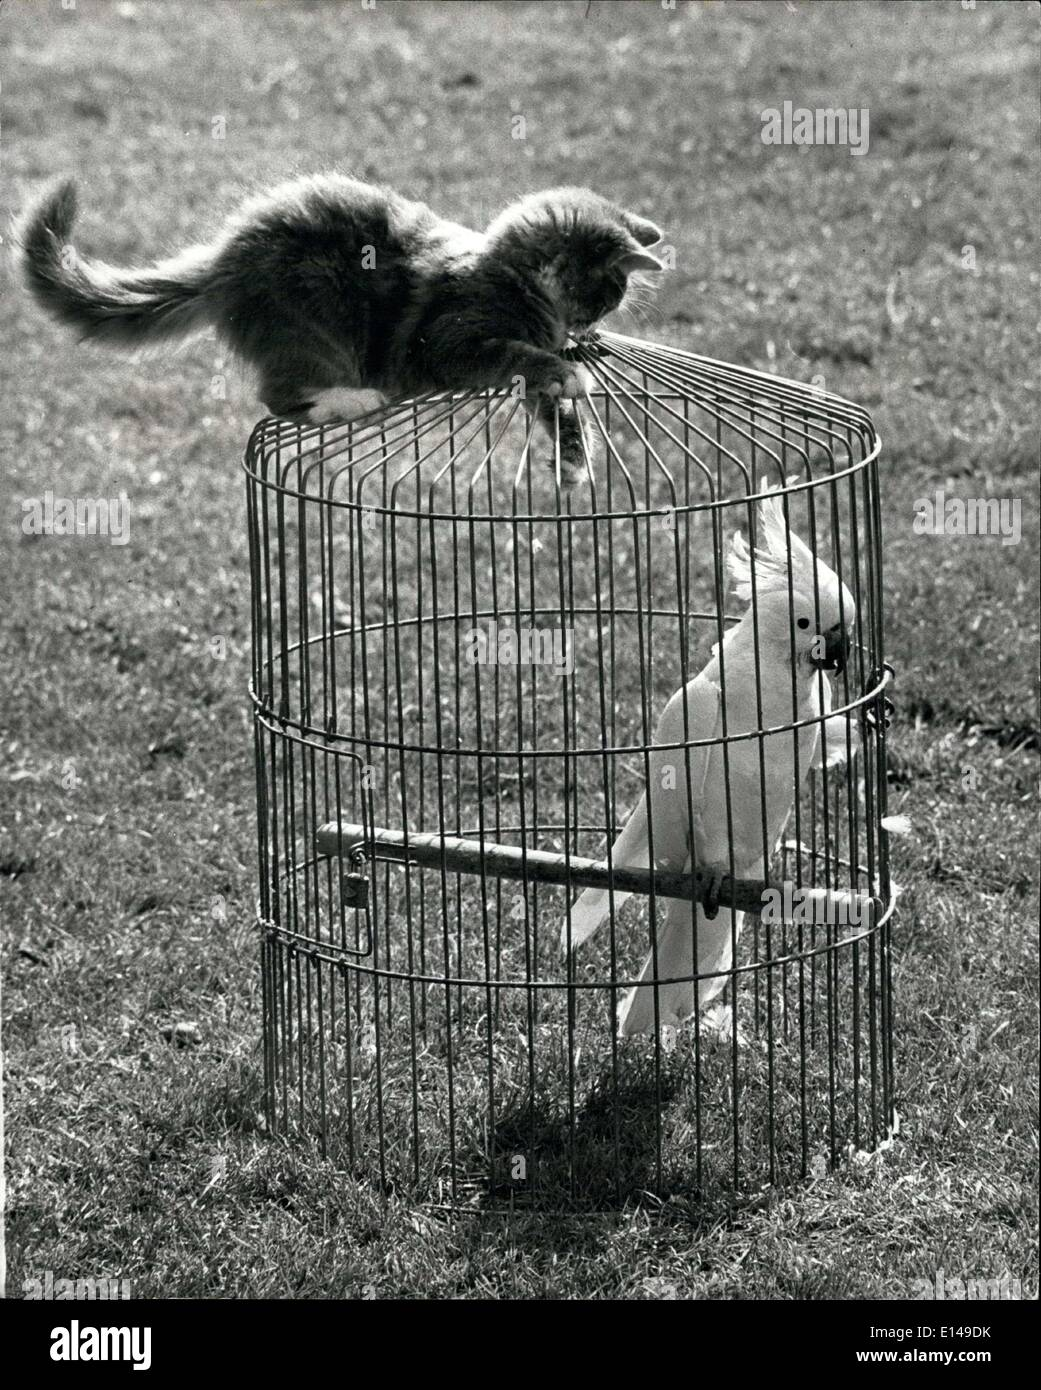 Apr. 17, 2012 - With one claw inside the cage, J.C. gets ready to blabber inside for a ''cat and mouse'' game with his friend he cockatoo. - Stock Image